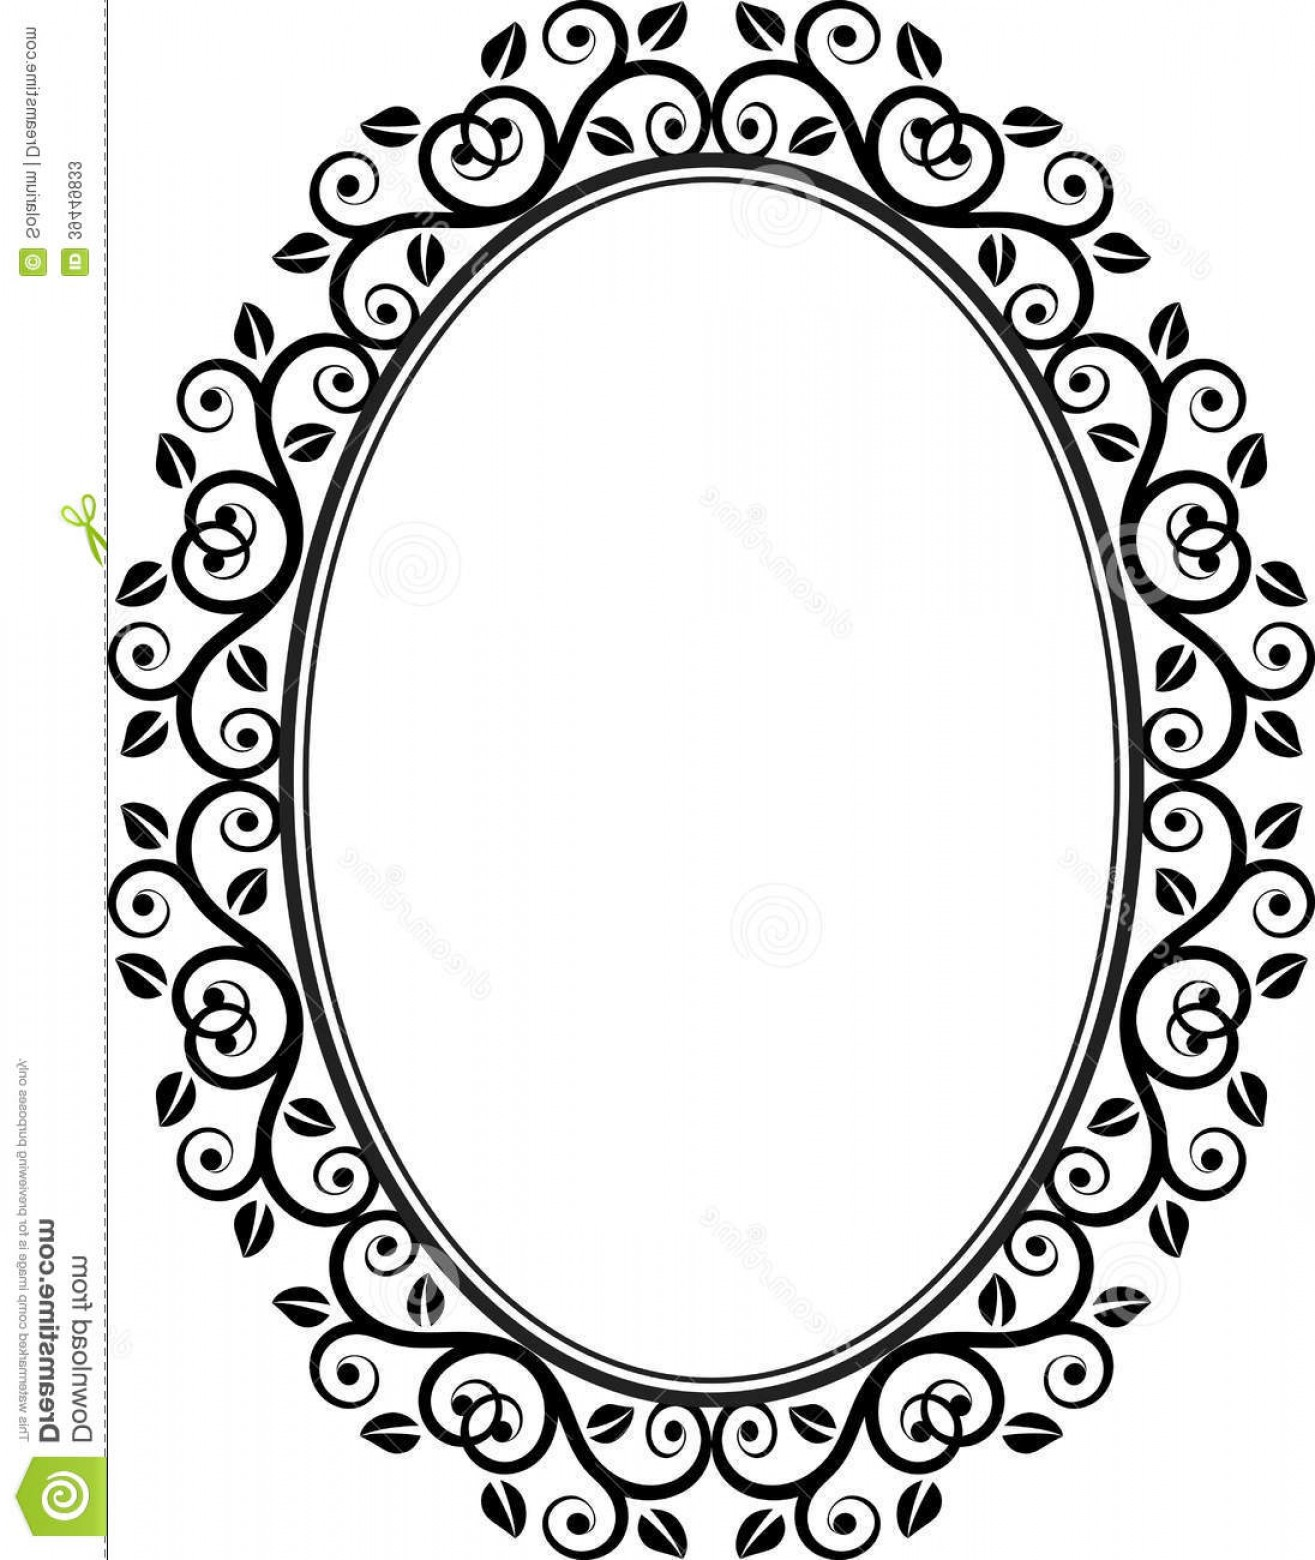 Filigree Oval Frame Vector: Stock Photos Floral Frame Oval Vector Illustration Image